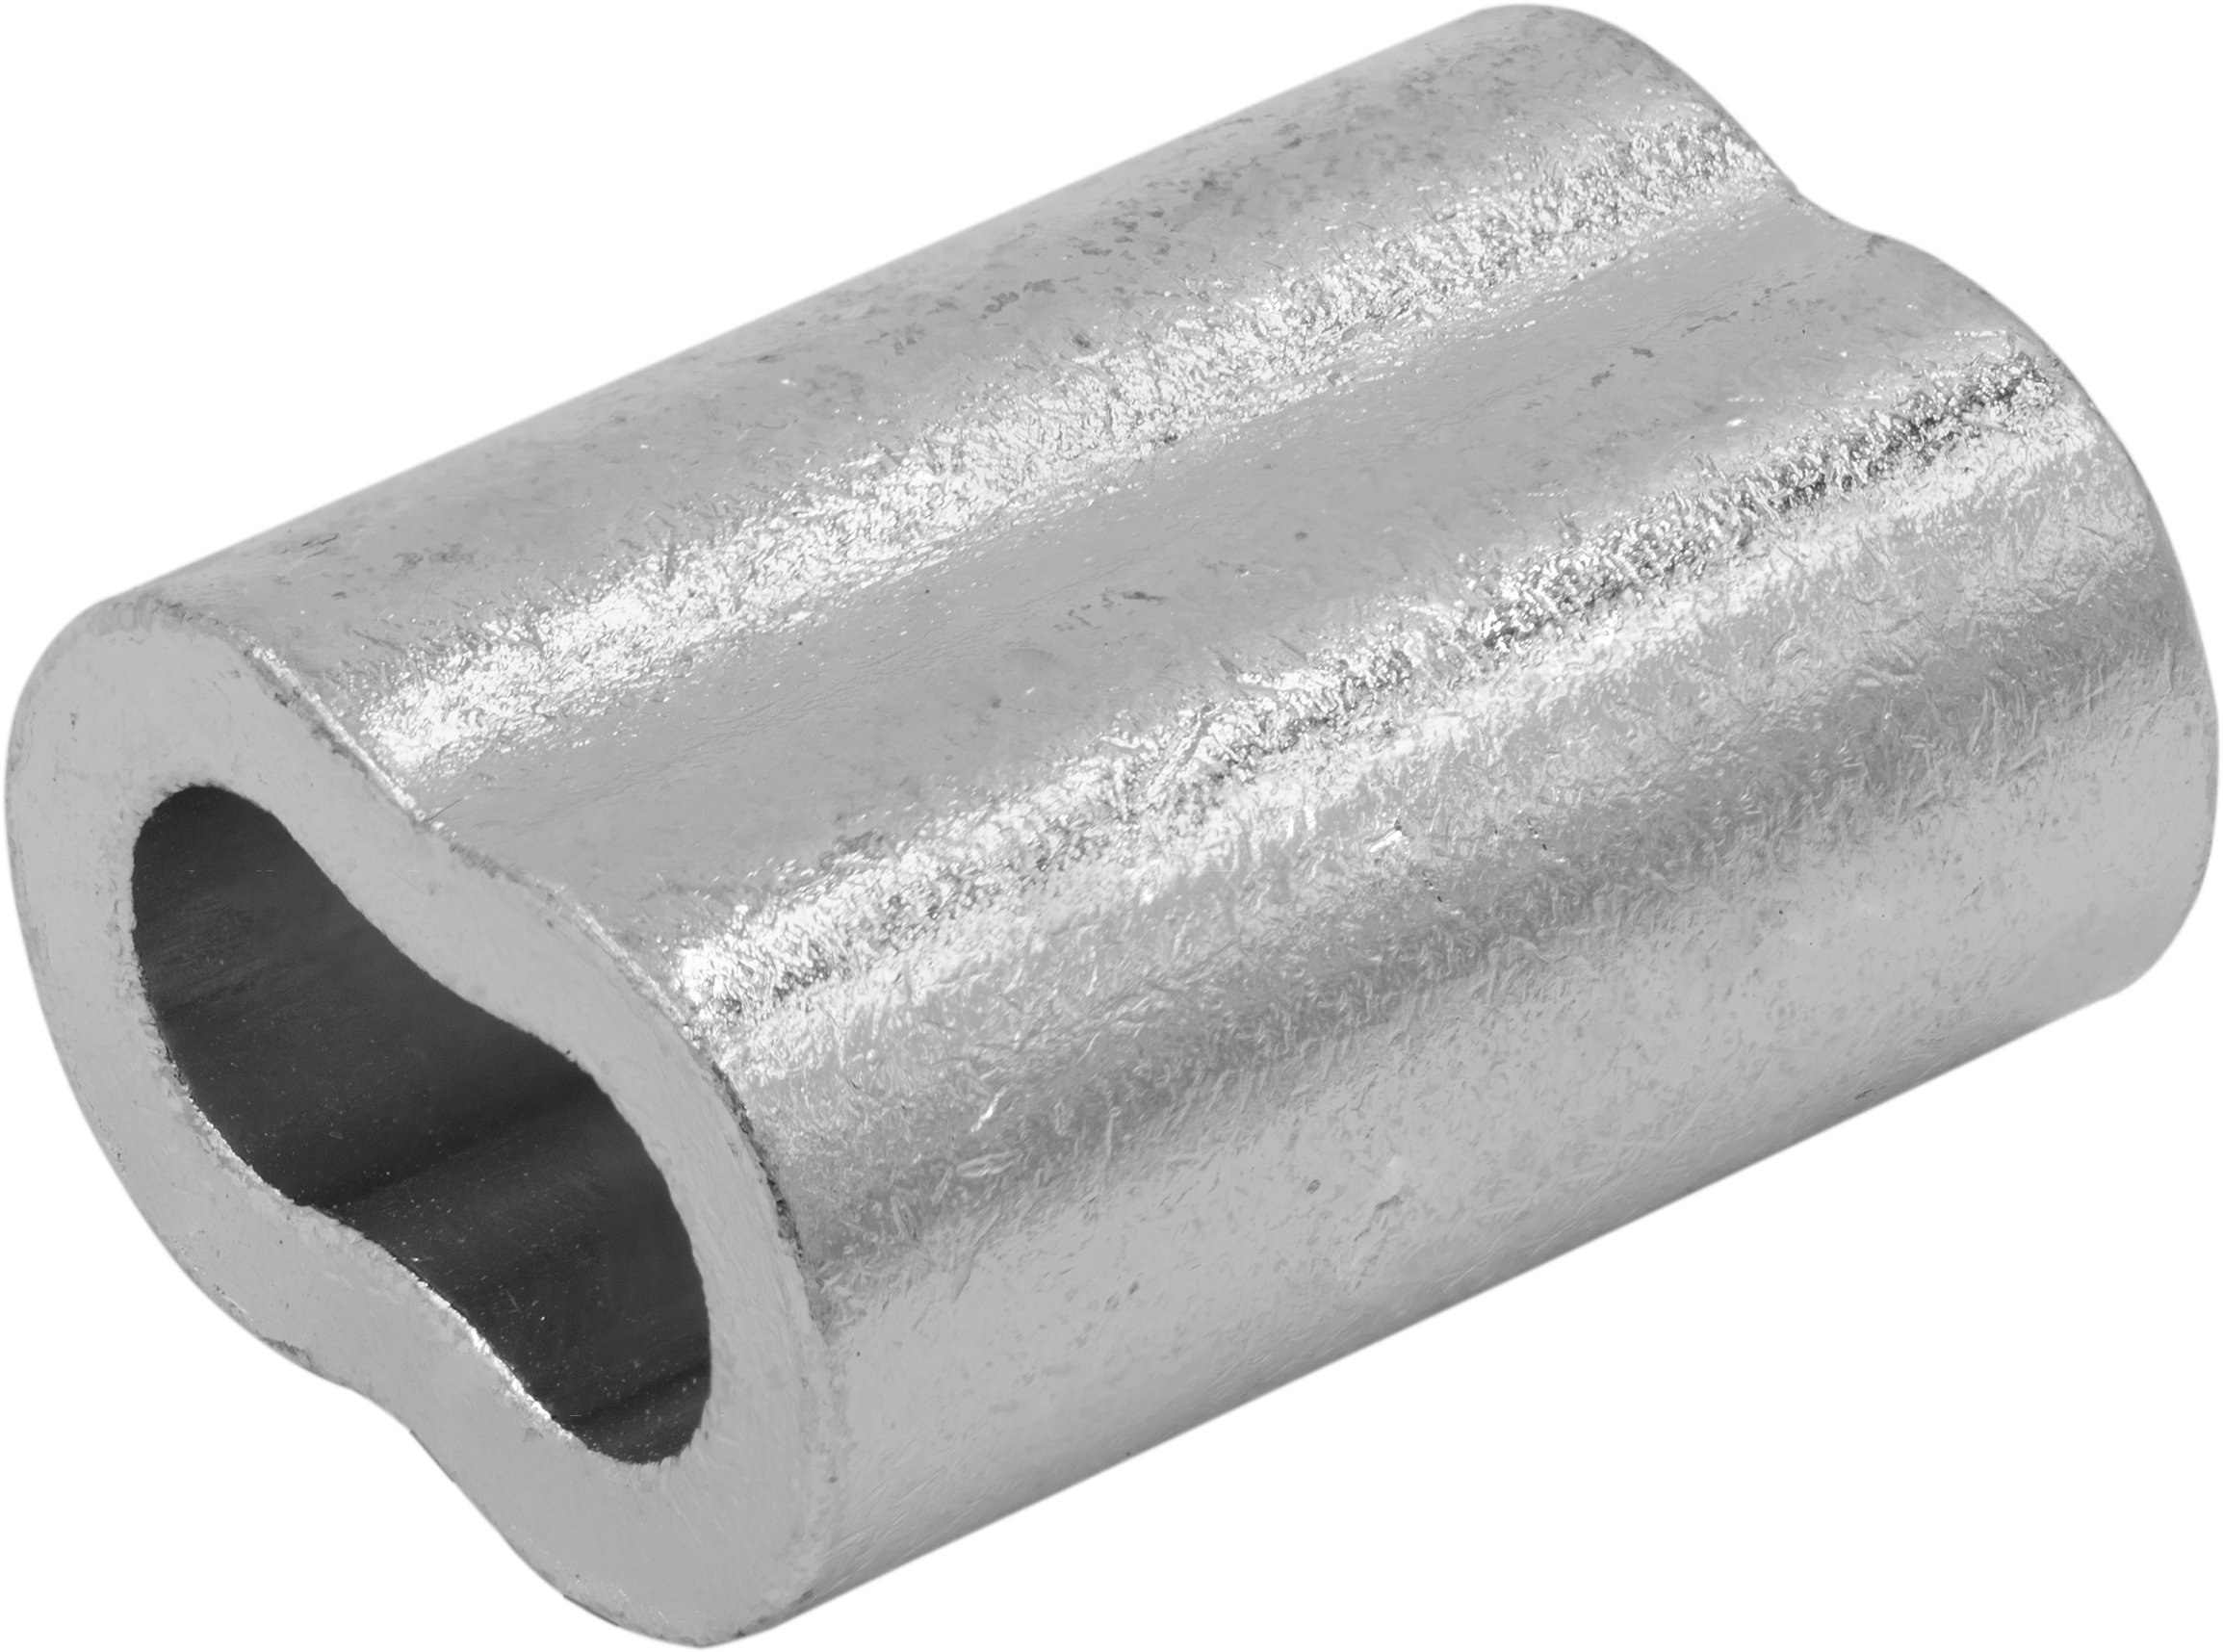 SwageRight MIL-SPEC Zinc Plated Copper Swage Sleeves Clip & Ferrules (3/16 inch) - Oval Duplex Wire Rope Cable Crimping Loop Fittings (Pack of 15)